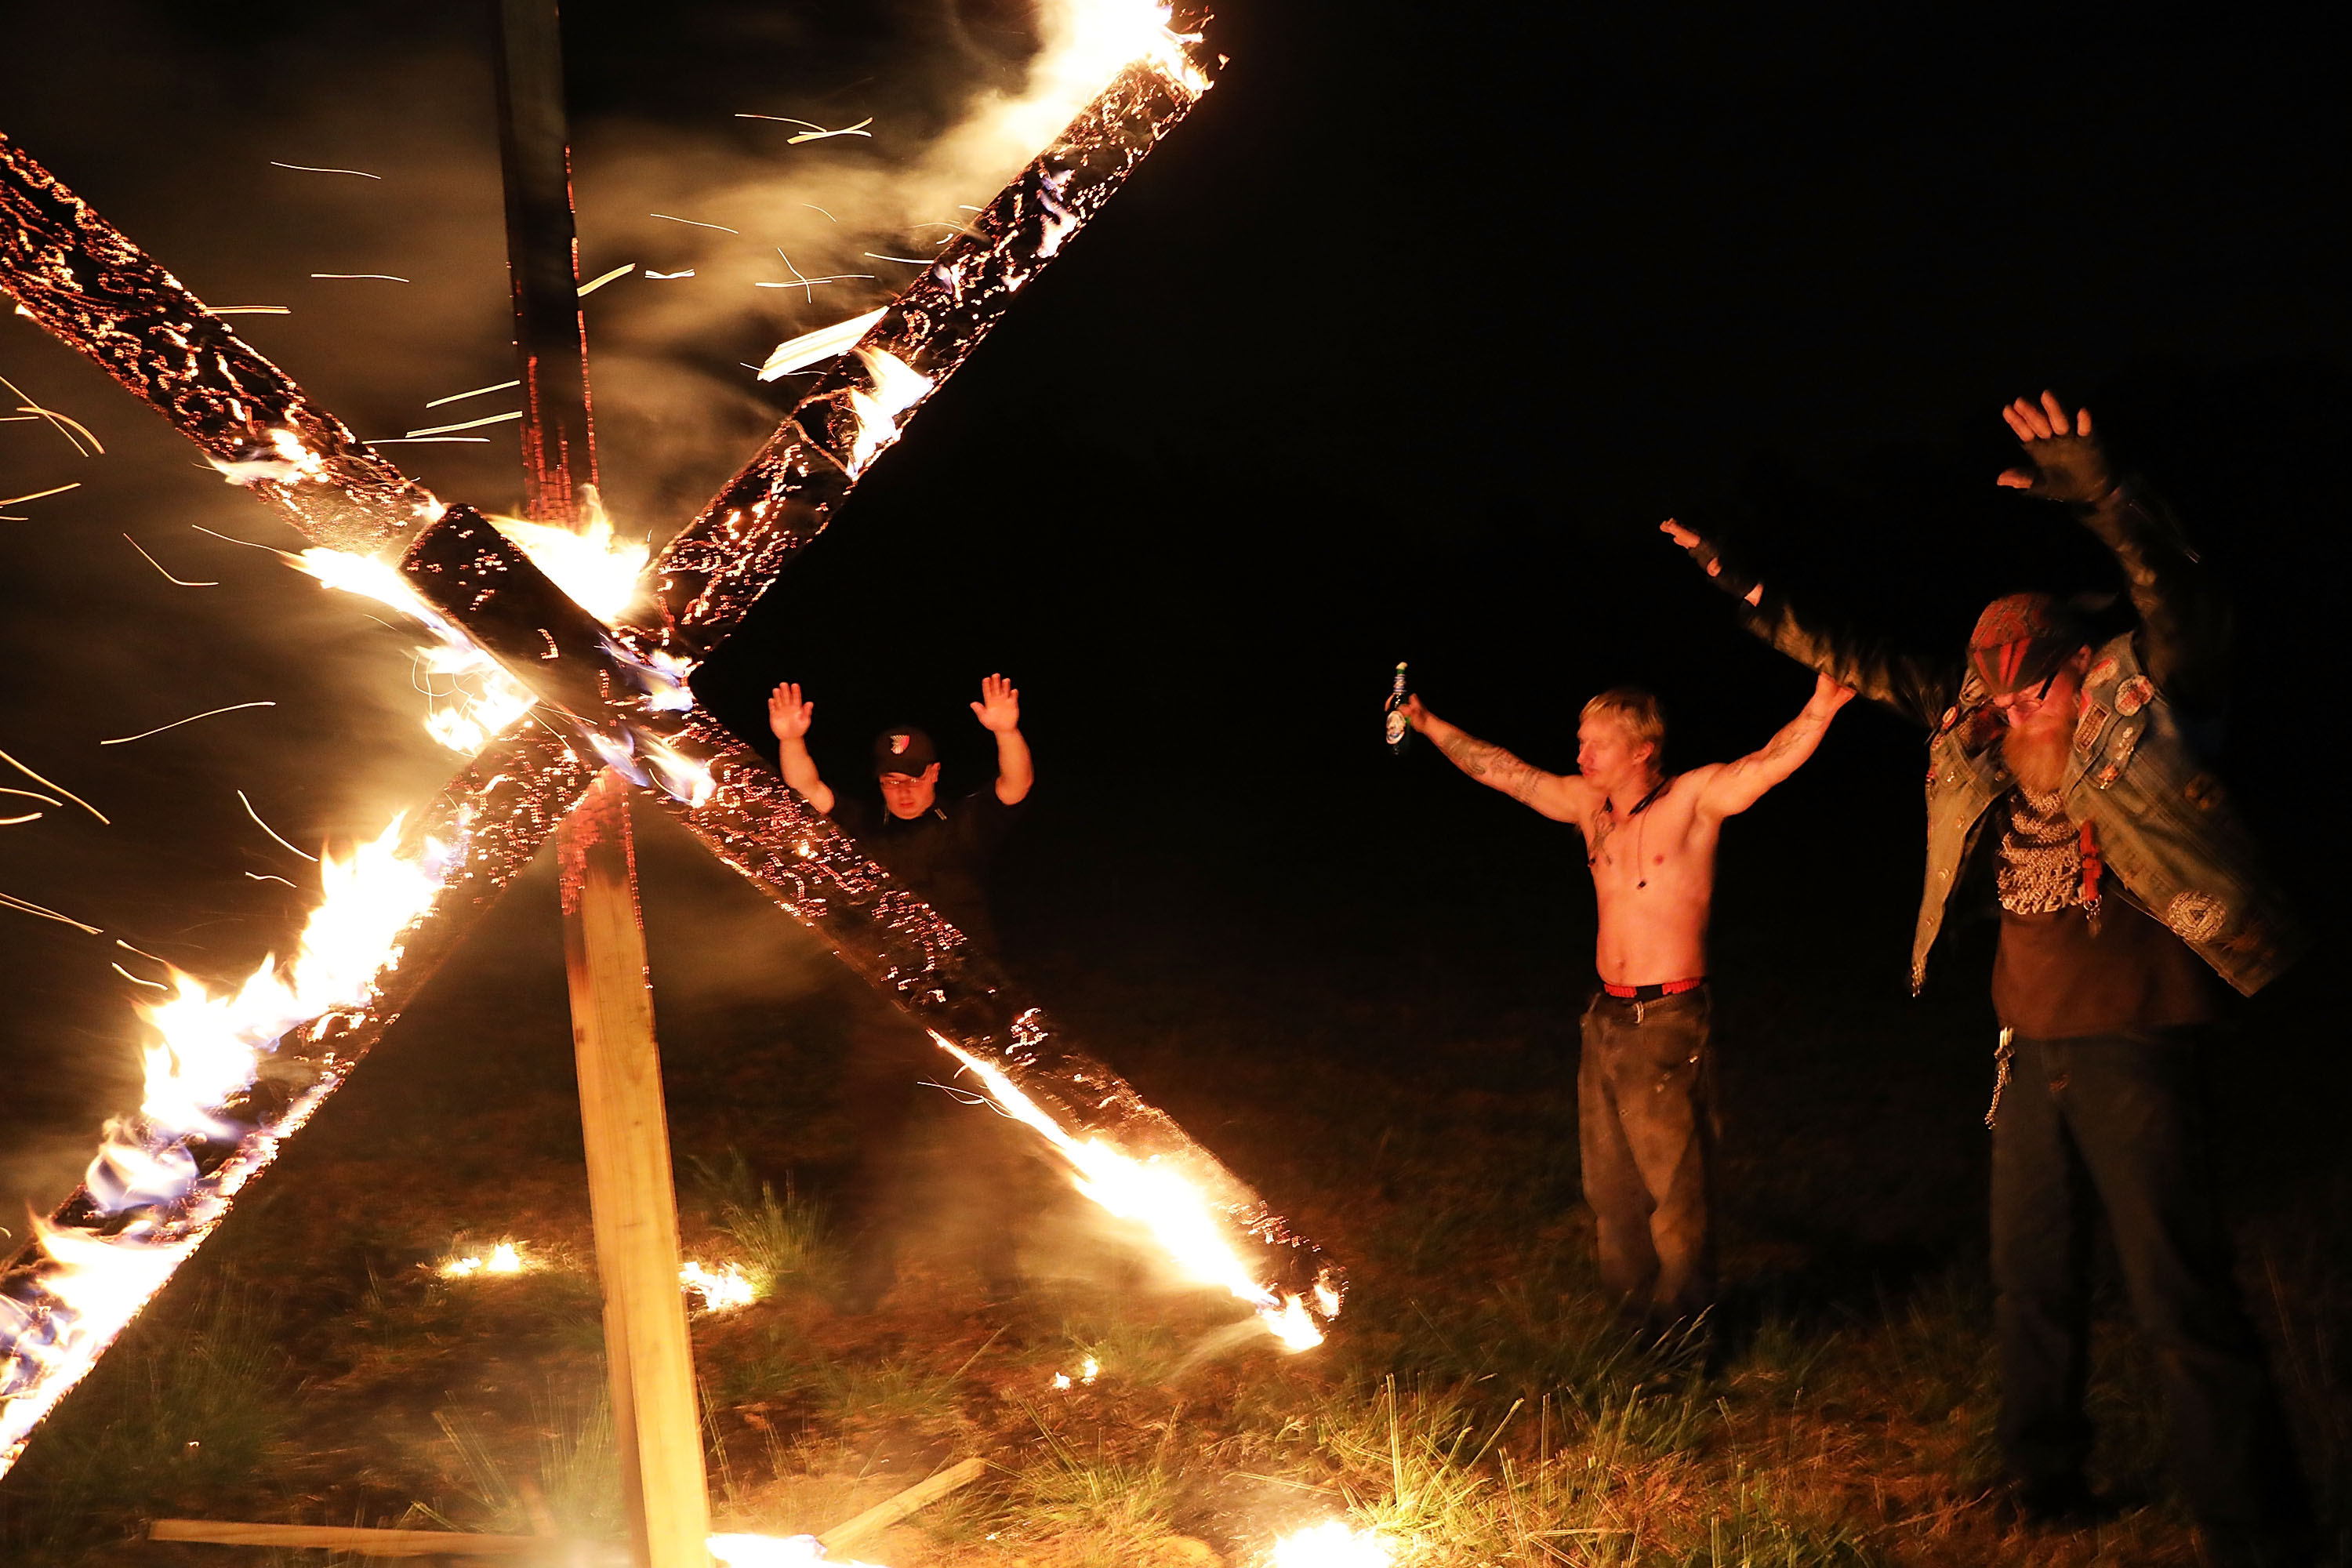 Members of the National Socialist Movement, one of the largest neo-Nazi groups in the US, hold a swastika burning after a rally on April 21, 2018 in Draketown, Georgia. Community members had opposed the rally in Newnan and came out to embrace racial unity in the small Georgia town. Fearing a repeat of the violence that broke out after Charlottesville, hundreds of police officers were stationed in the town during the rally in an attempt to keep the anti racist protesters and neo-Nazi groups separated